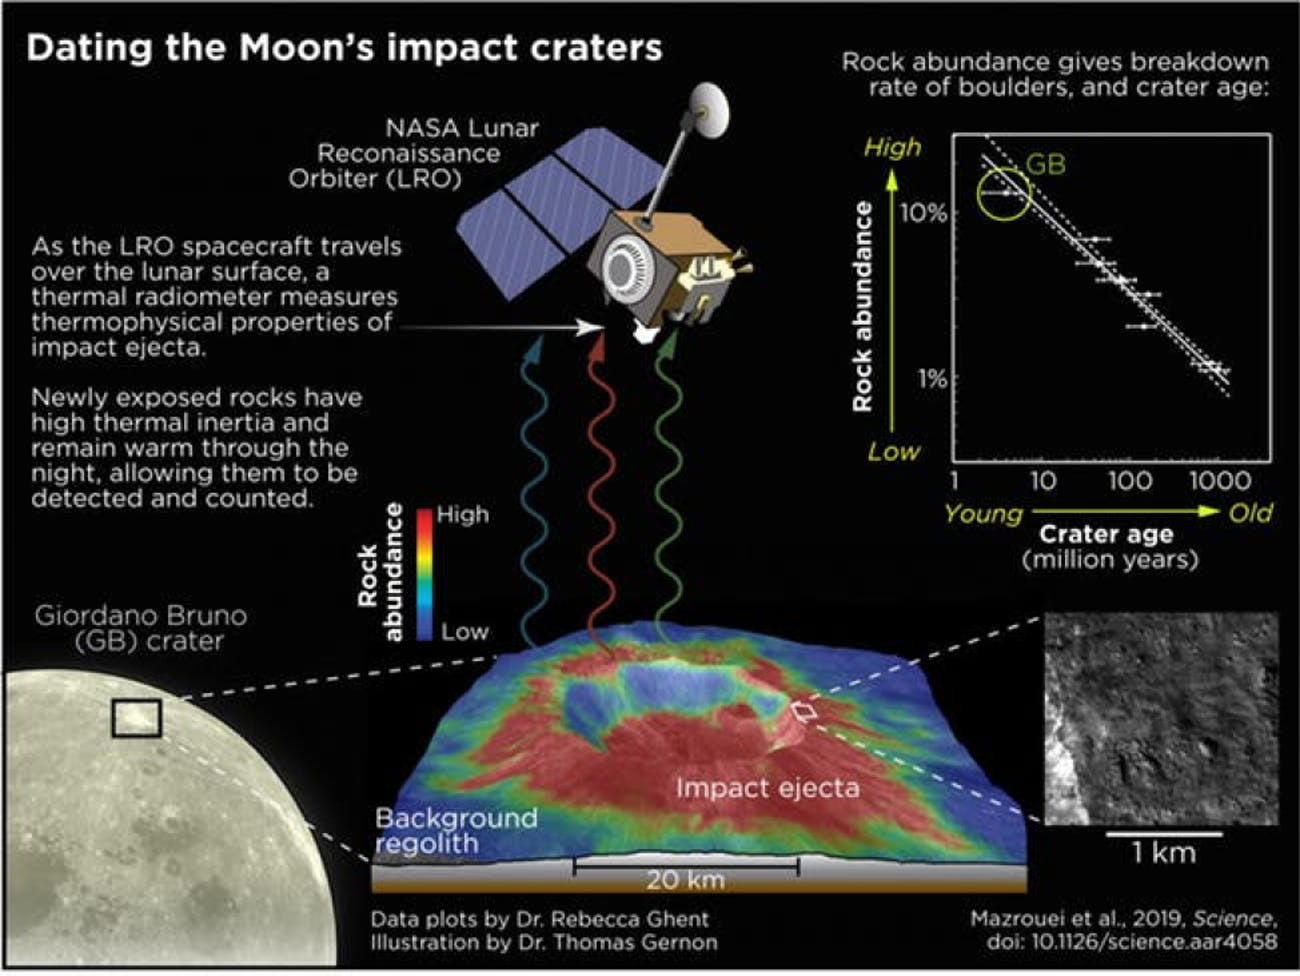 How the scientists dated the moon's impact craters.